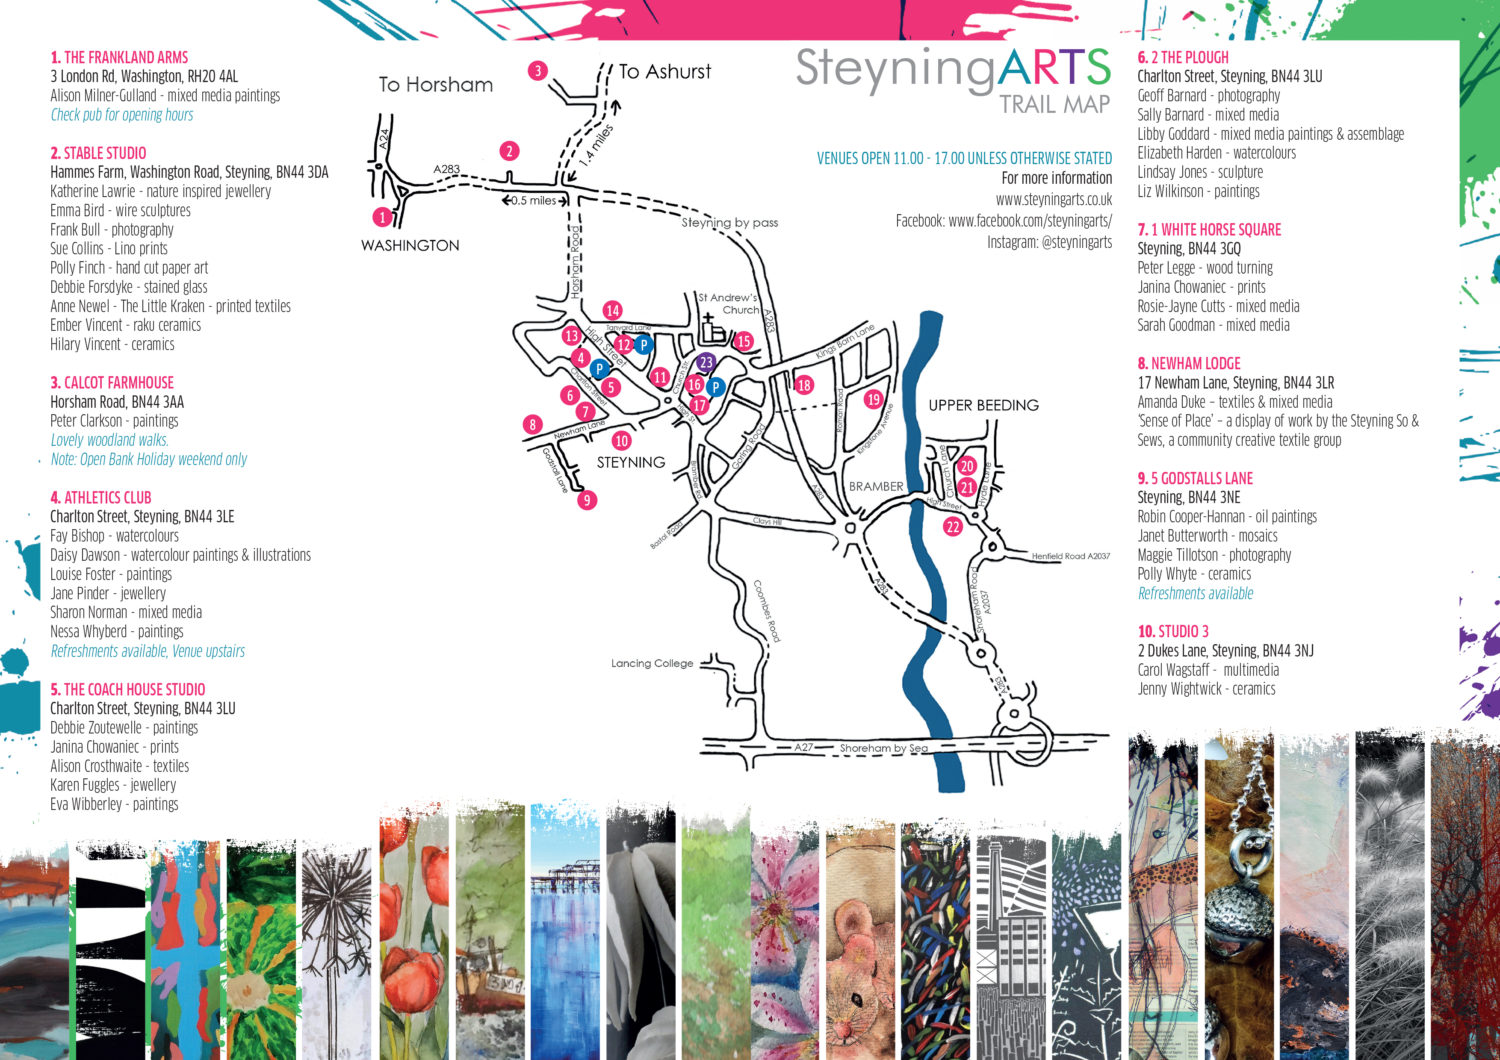 Steyning Arts Trail Map